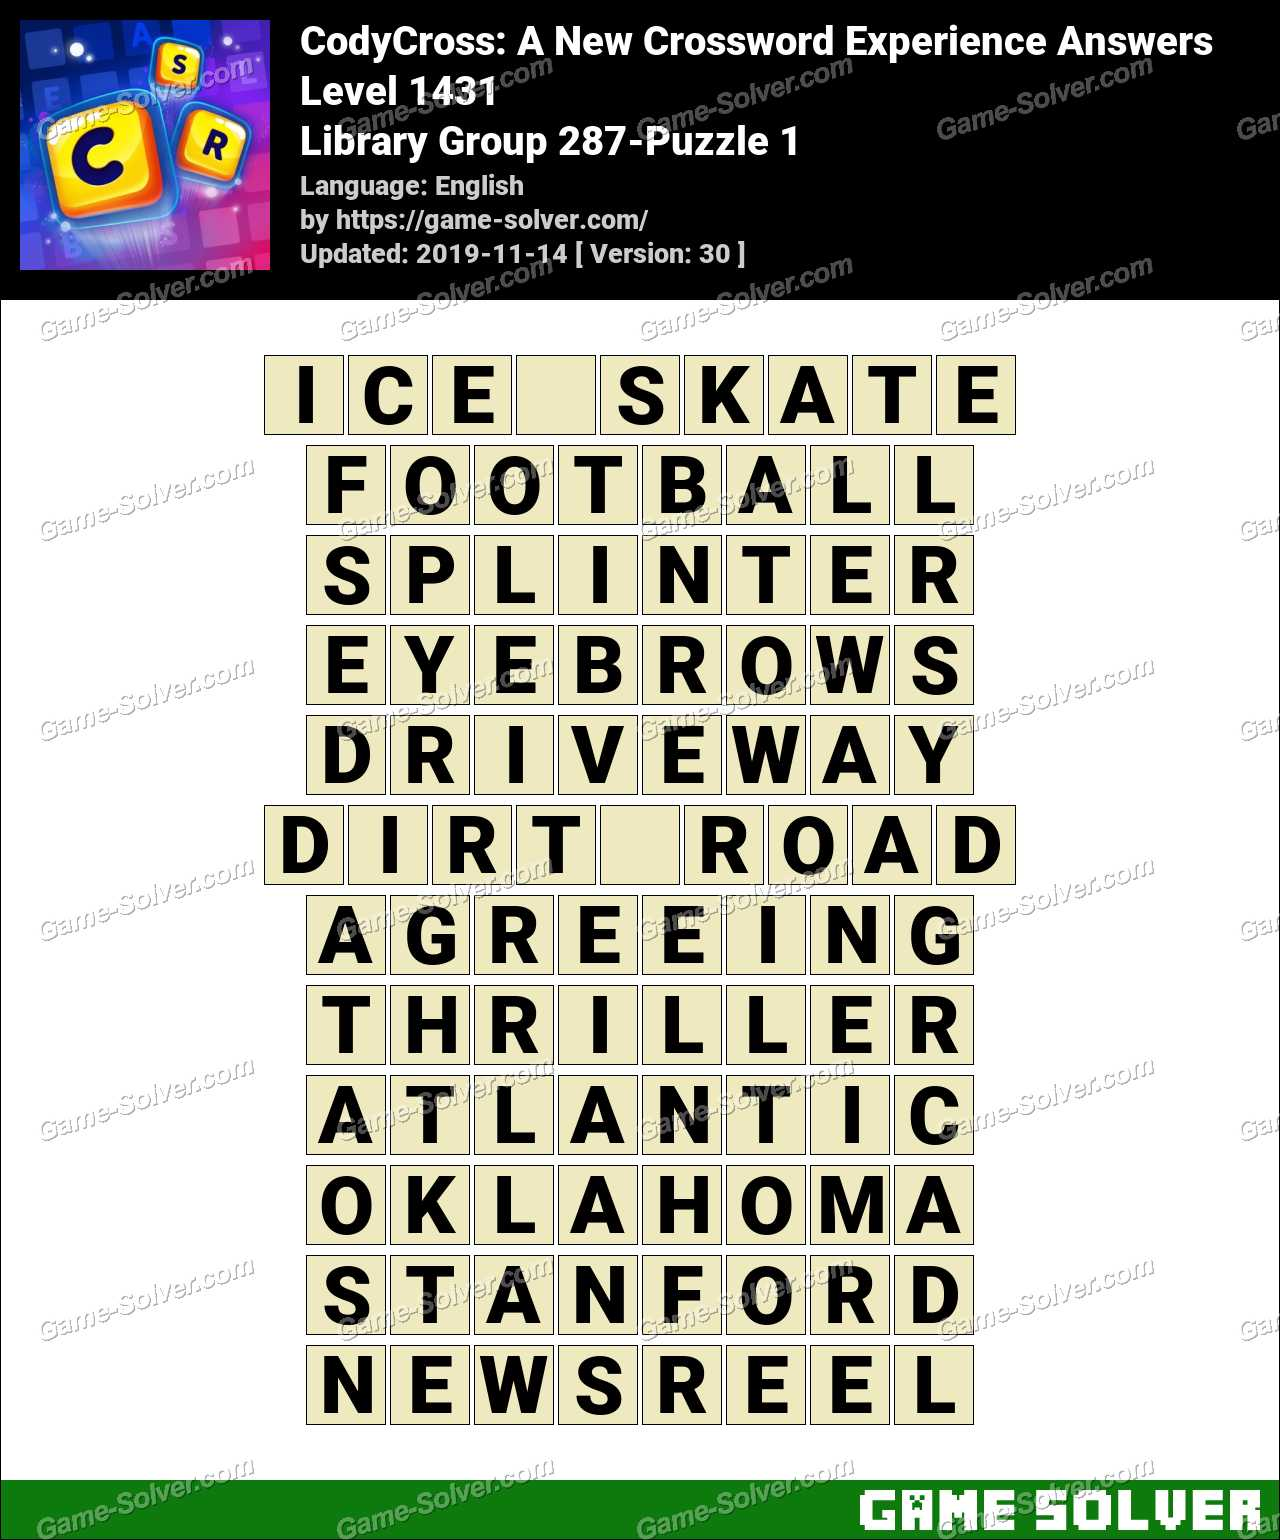 CodyCross Library Group 287-Puzzle 1 Answers